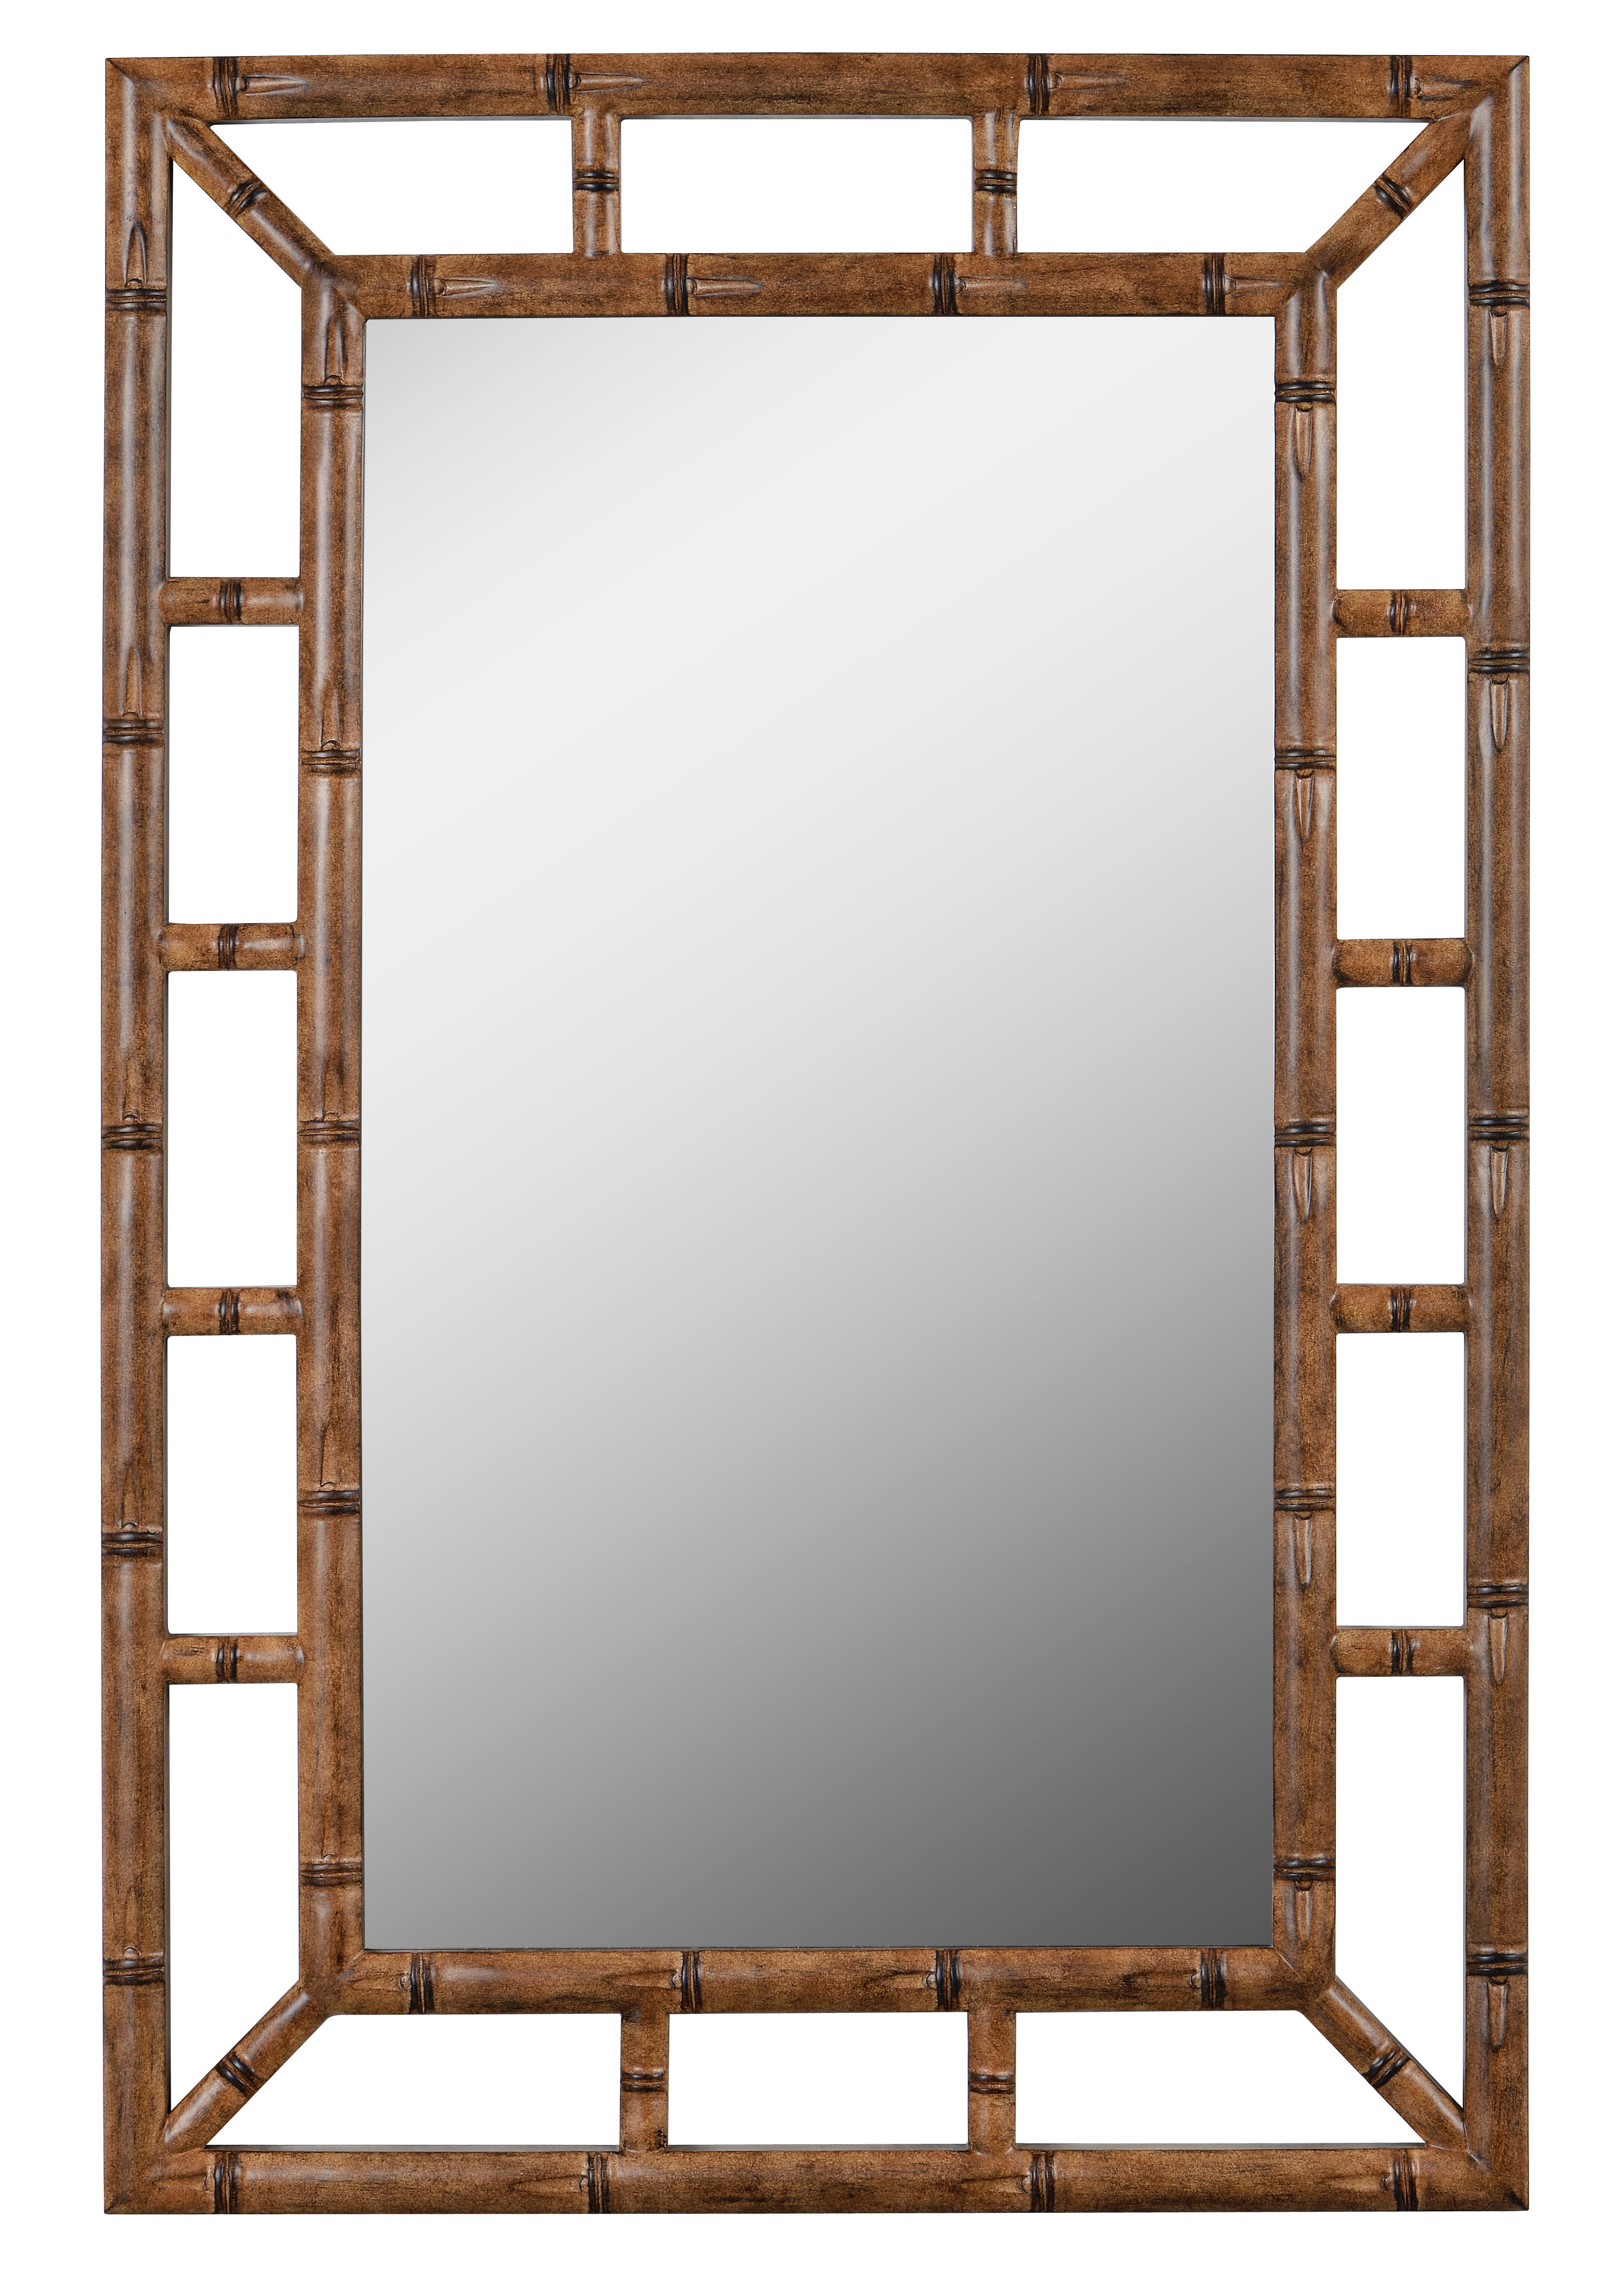 Cleta Bamboo Brown Traditional Beveled Wall Mirror In 2 Piece Priscilla Square Traditional Beveled Distressed Accent Mirror Sets (View 16 of 20)